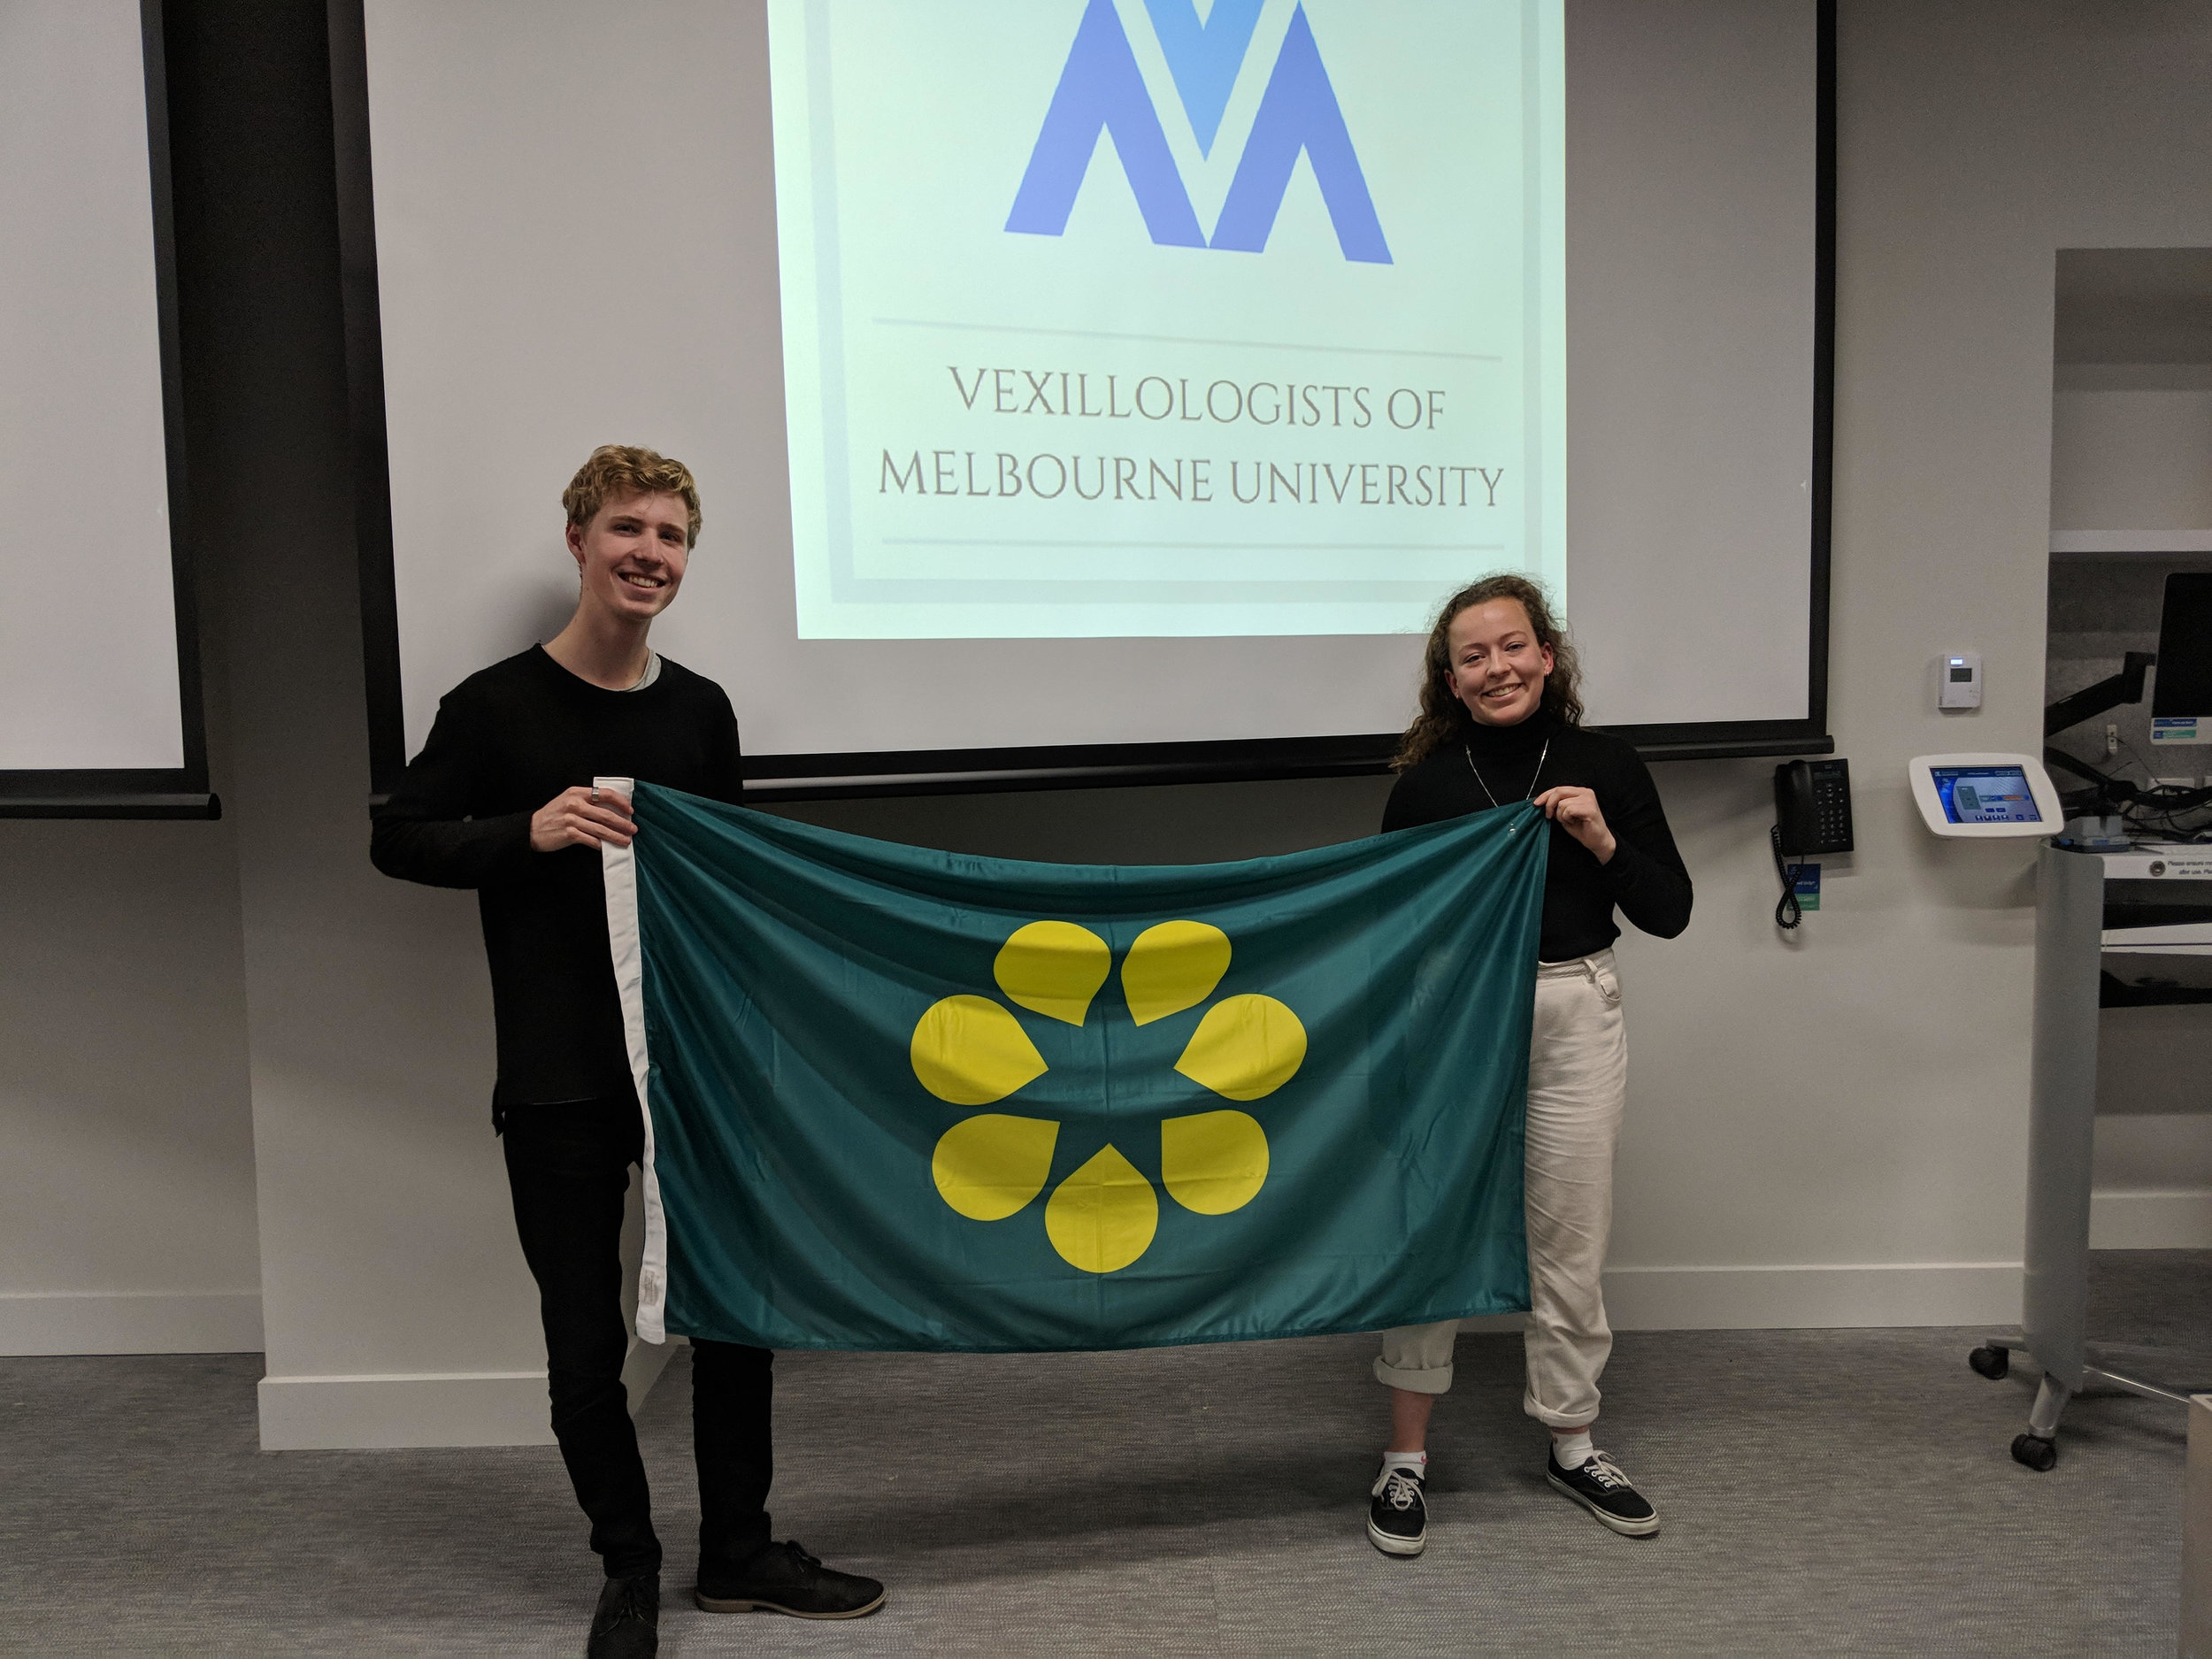 The President and Secretary-General of the Vexillologists of Melbourne University (VoMU) showing their support for the Golden Wattle Flag.